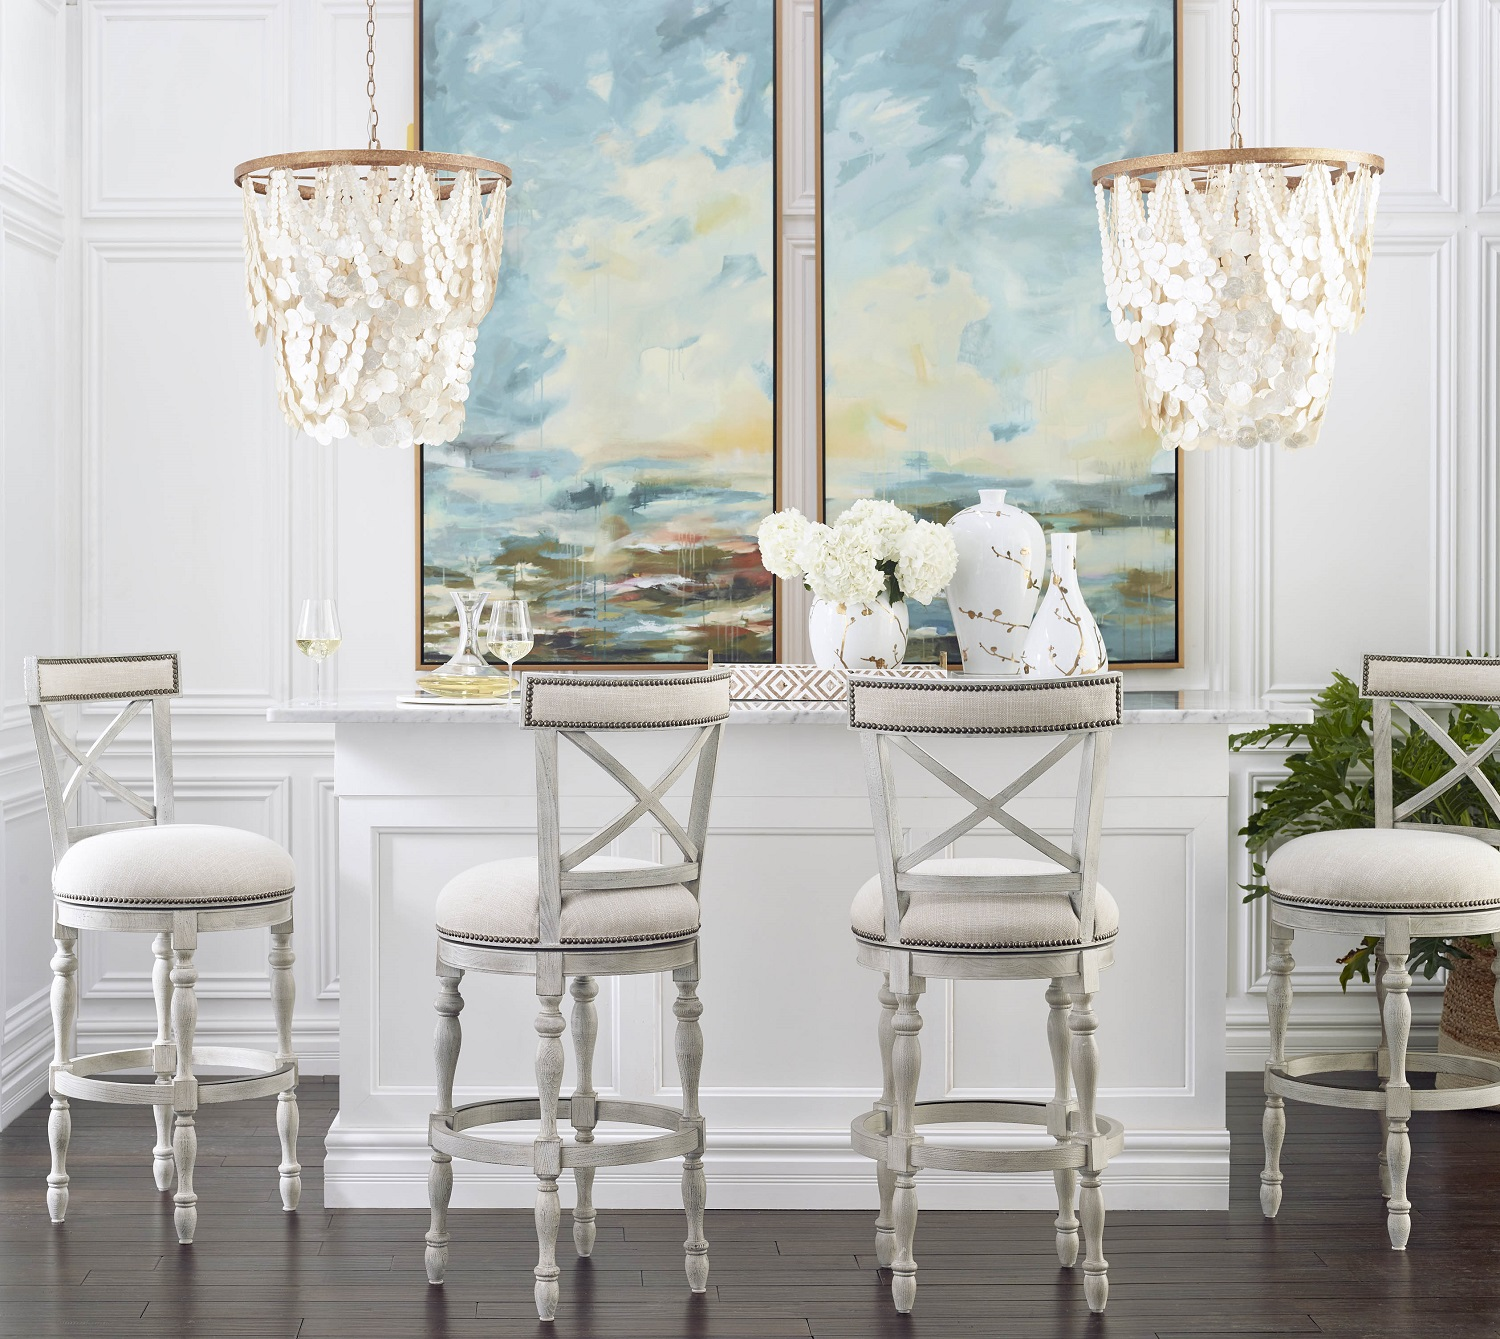 When it comes to a fresh, new look for the New Year, it's all in the details. Carefully planned furnishings, artwork, lighting and accessories that all work together. Shown: Frontage's Griffith X-back swivel bar stools in linen or leather, beautiful Carmel-by-the-sea giclee print on canvas and gilded blossoms hand-painted ceramic vase collection. Photo: Frontgate